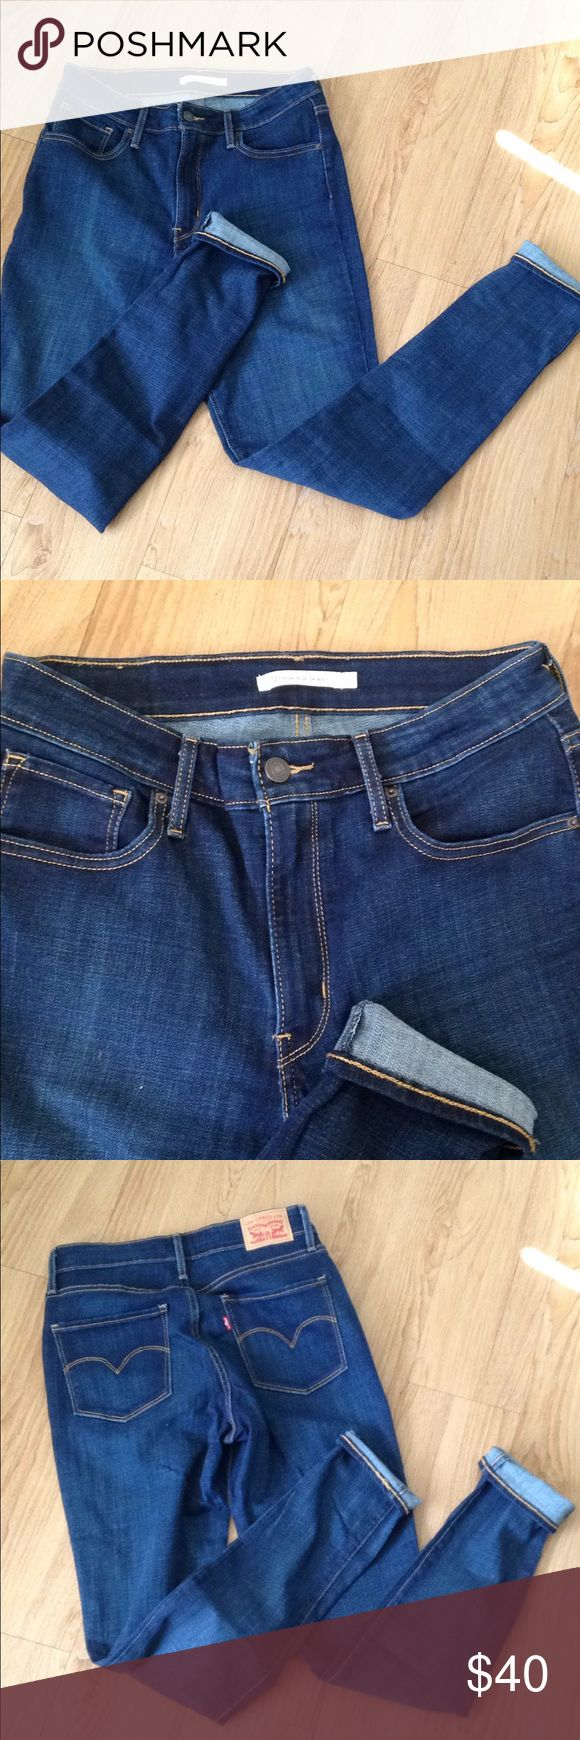 """Levi's 721 High Rise Women's Skinny Denim Jeans ✨reasonable offers are ALWAYS accepted through the offer button below, NO LOWBALLS, please👇🏻  •size 31 x 32"""" inseam. high rise & stretchy. •brand is Levi's •condition is NWT! tags were removed, but jeans have never been worn •smoke free & pet free home  ⛔️SORRY, NO TRADES Levi's Jeans Skinny"""